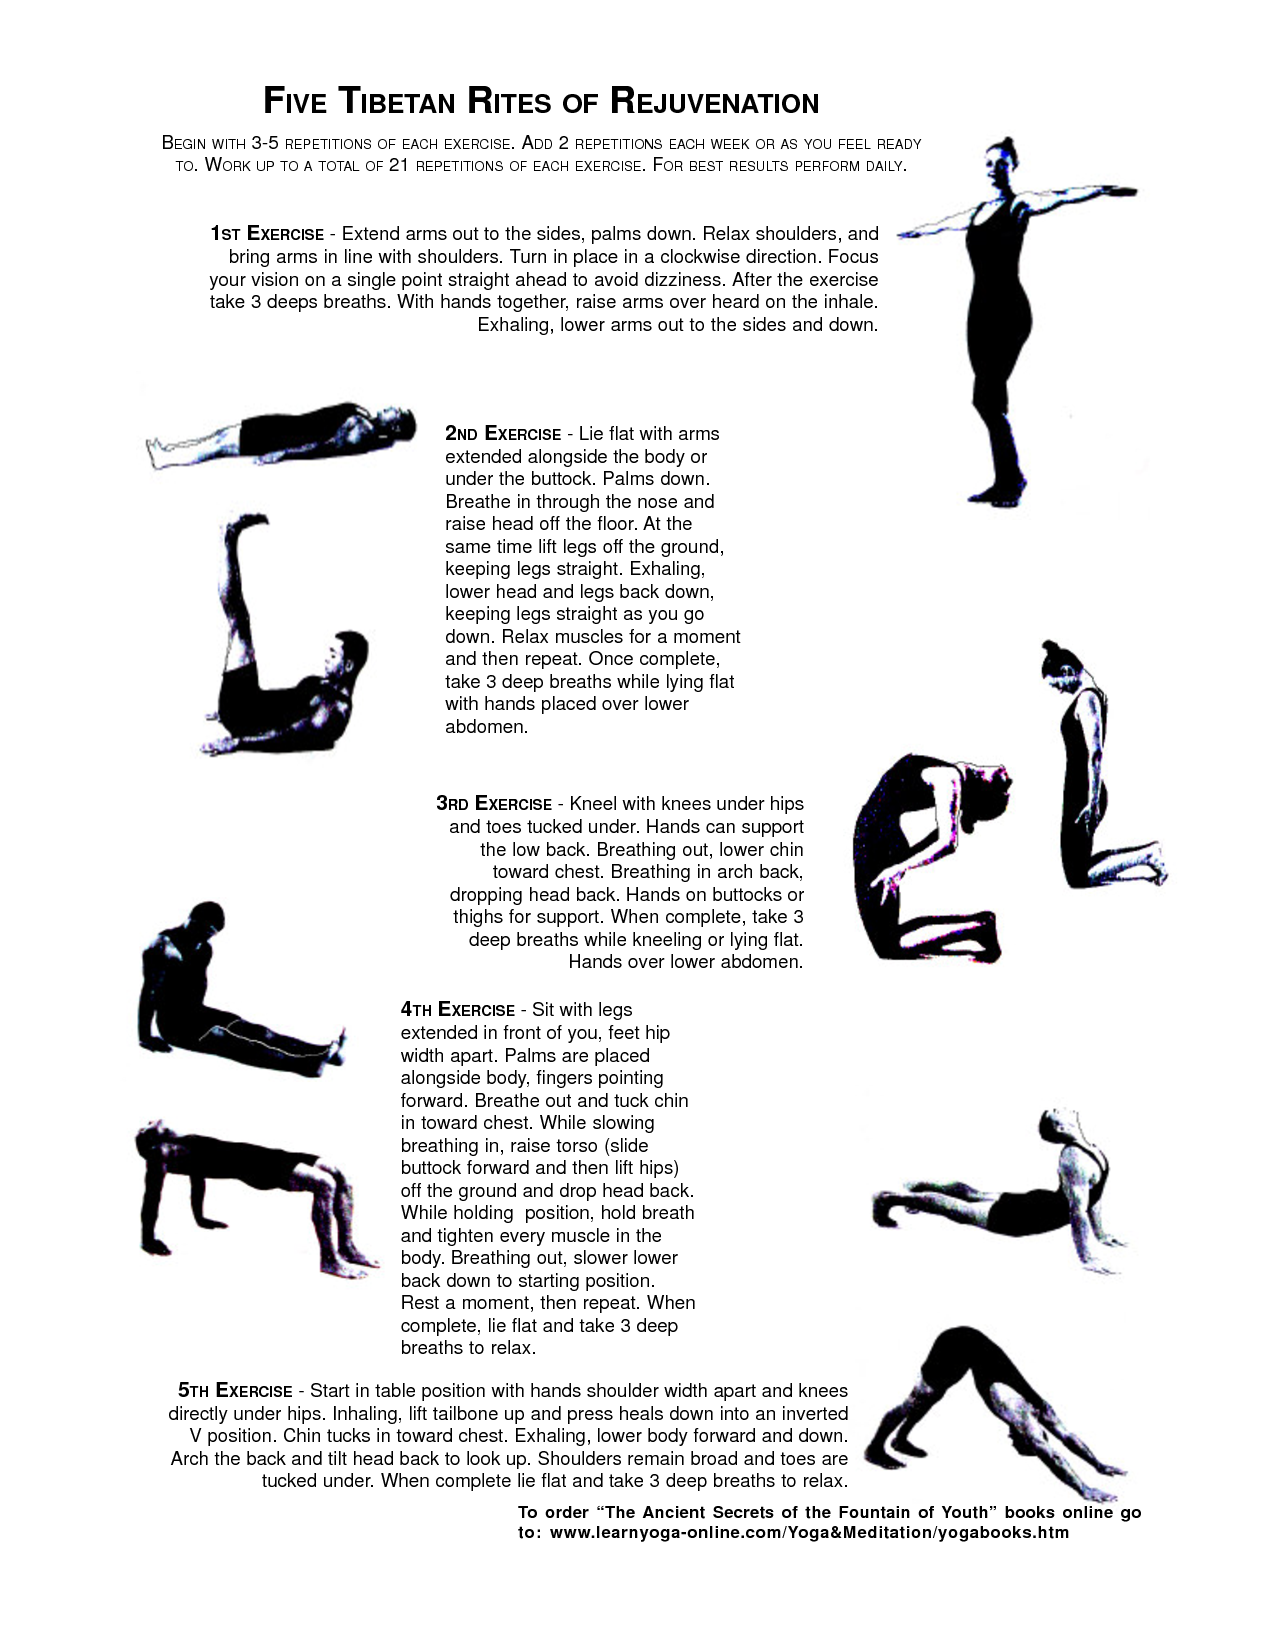 Stay Young And Healthy By Doing These Ancient Tibetan Exercises Tibetan Rites Five Tibetan Rites 5 Tibetan Rites